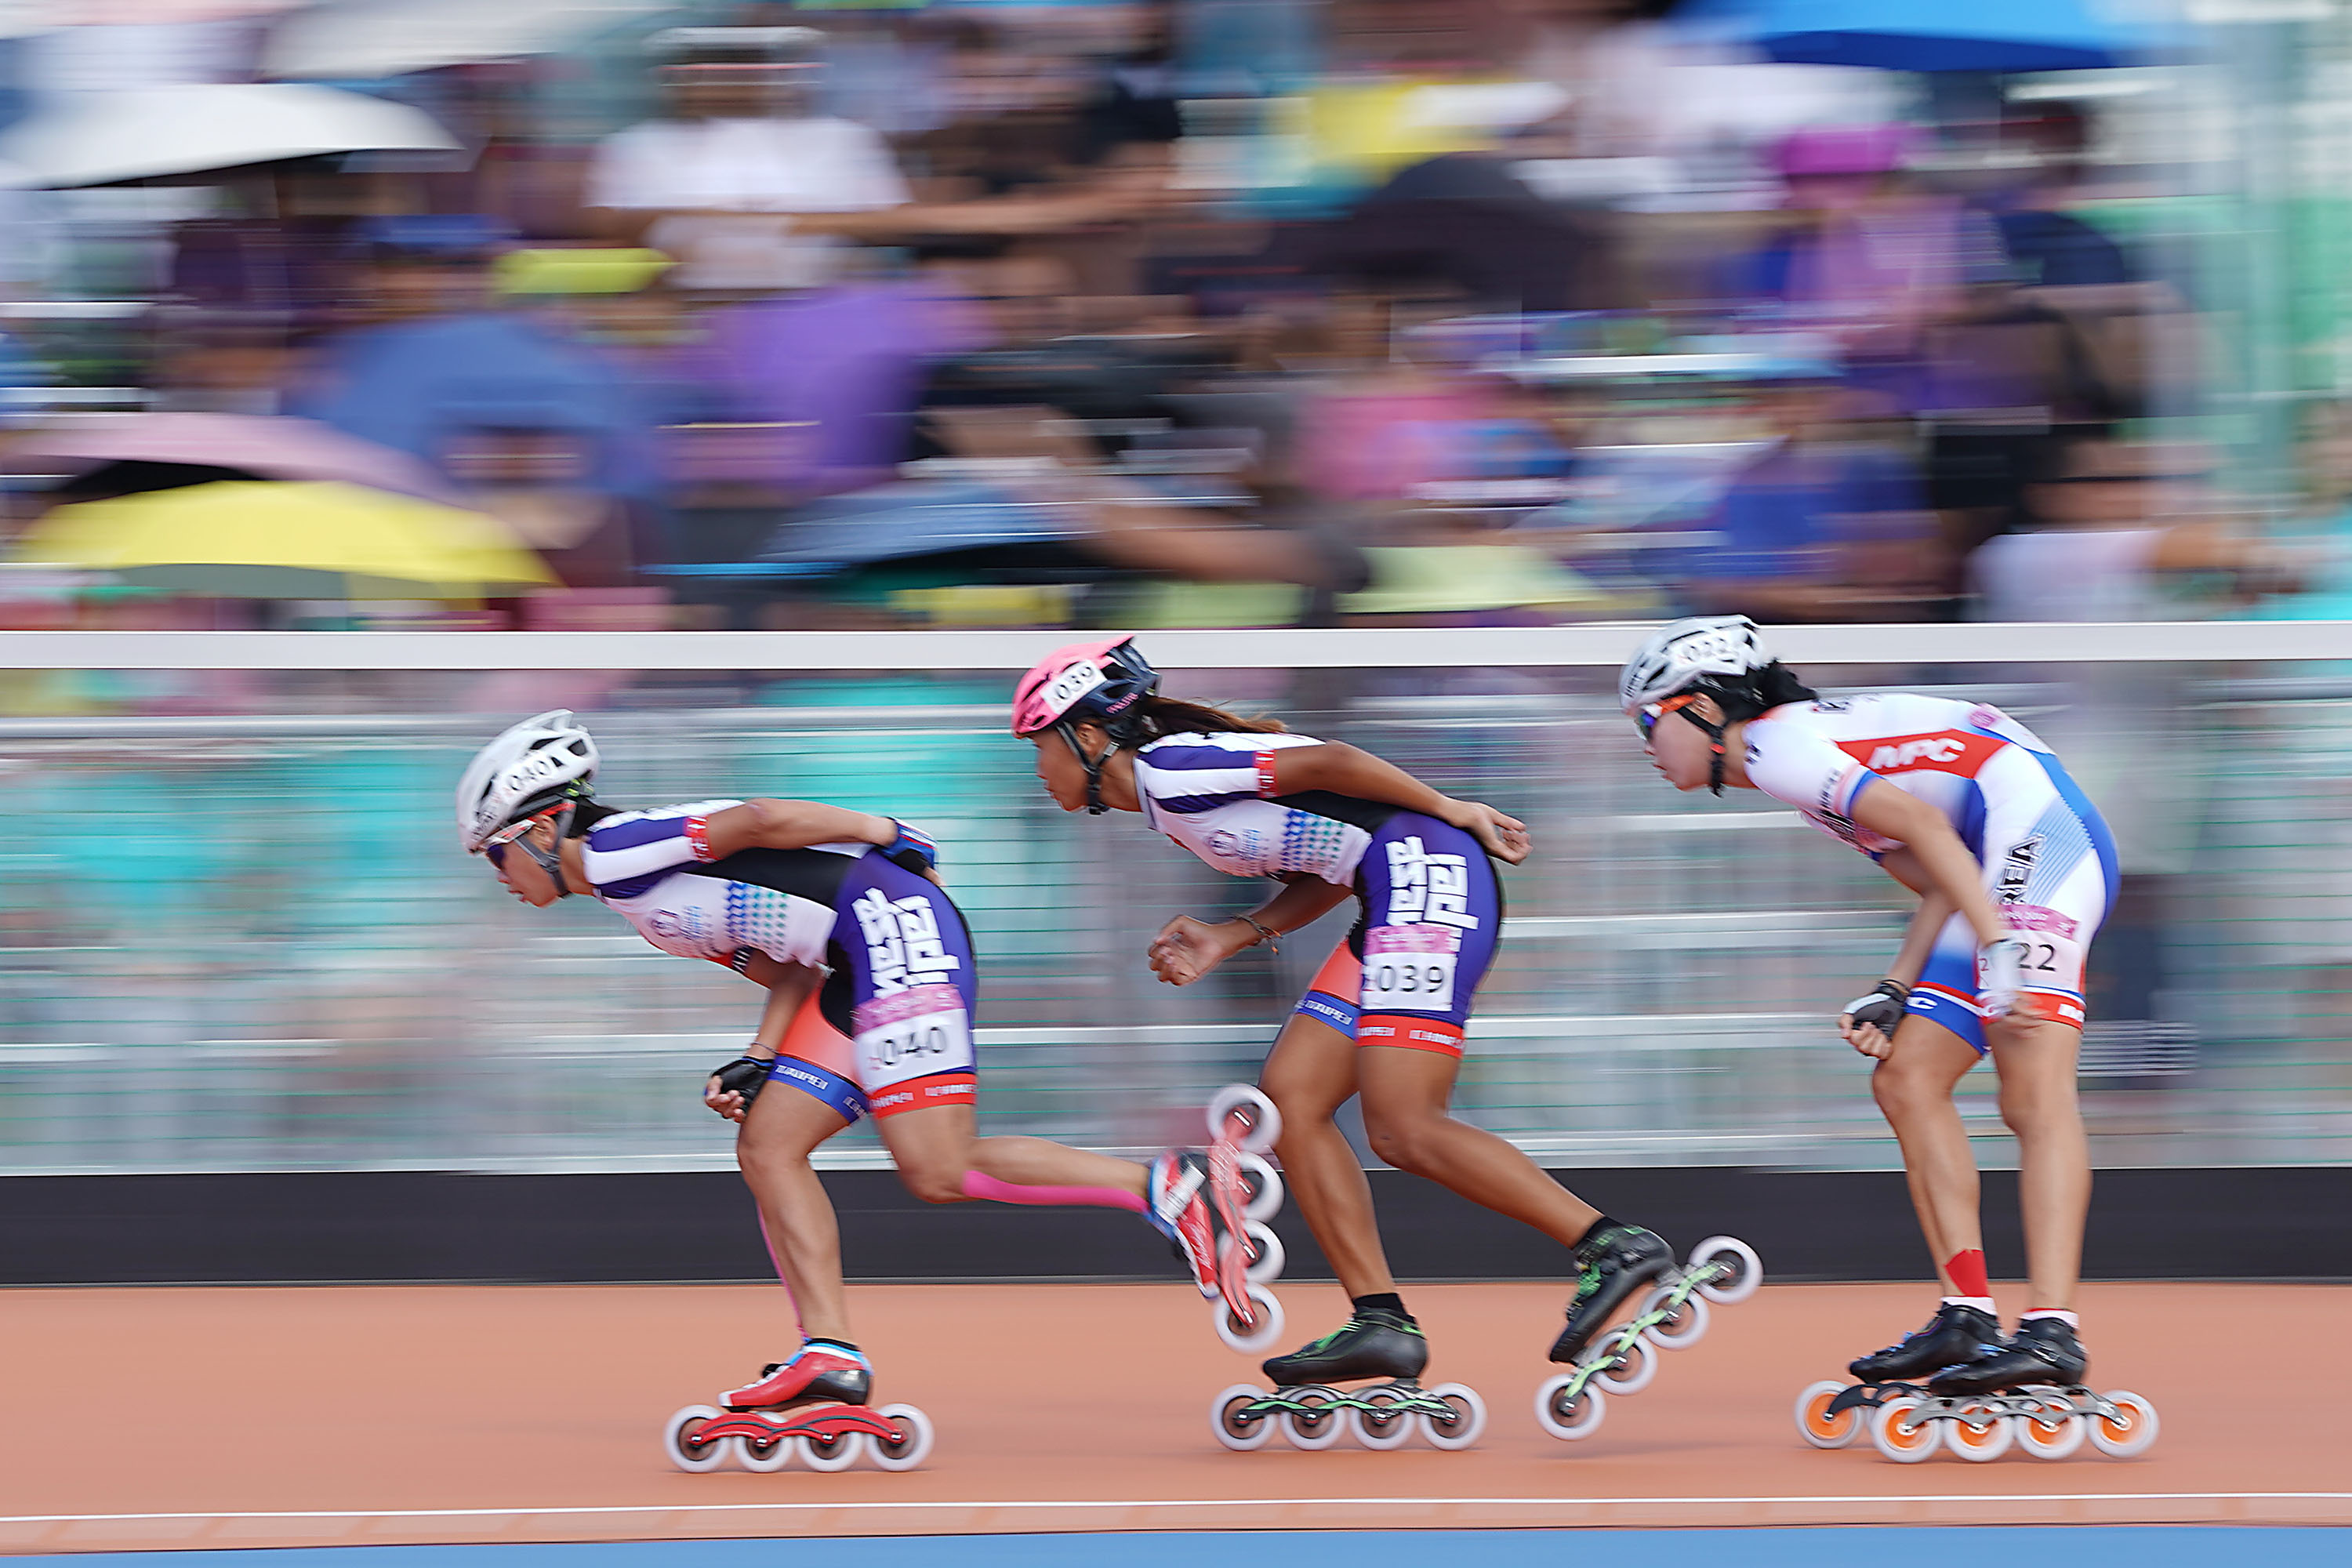 Taiwanese Yang Ho-chen (楊合貞) and Li Meng-chu (李孟竹) snatched the first and second place in the women's 10,000 m points-elimination final later on Monda...